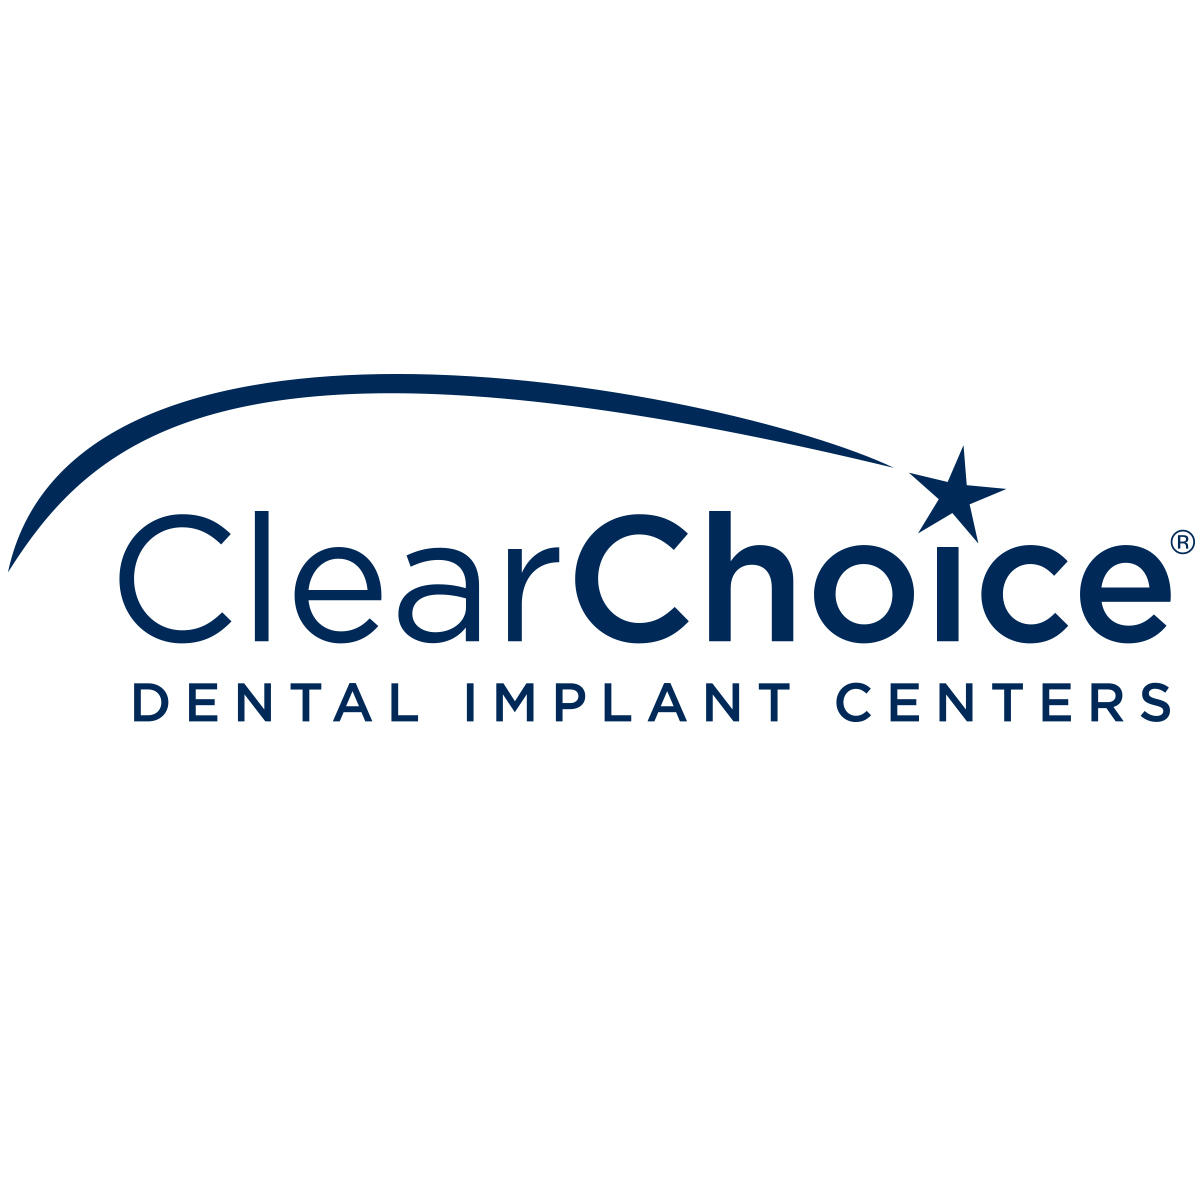 Dental Implants Periodontist in NJ Roseland 07068 ClearChoice Dental Implant Center 5 Becker Farm Rd Suite 101 (862)881-4139